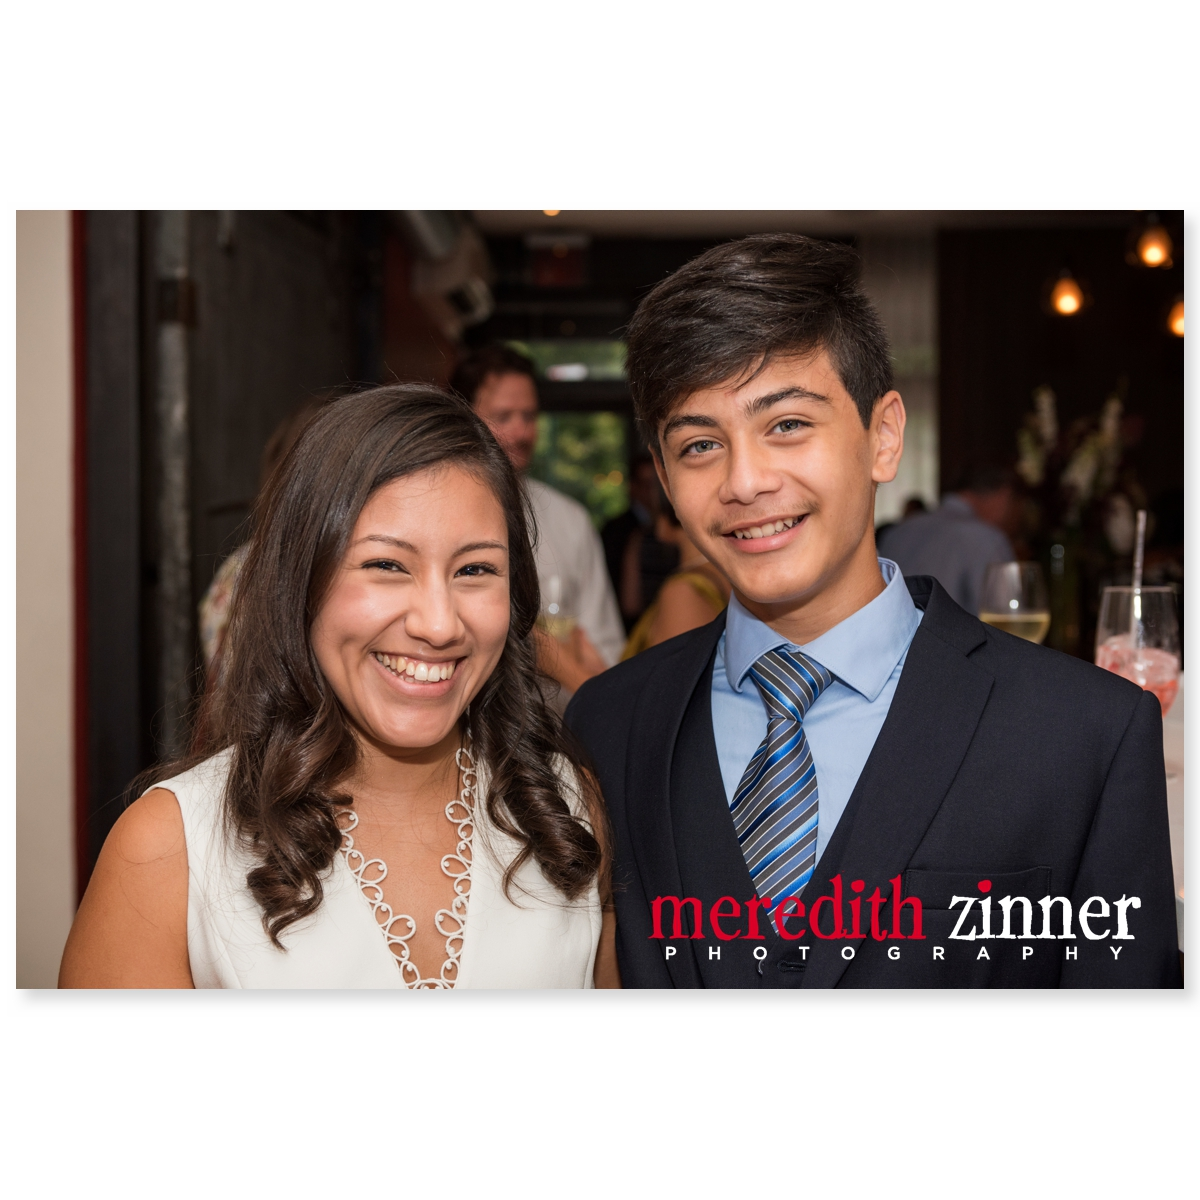 Meredith_Zinner_Photography_StilesCelebration_0124